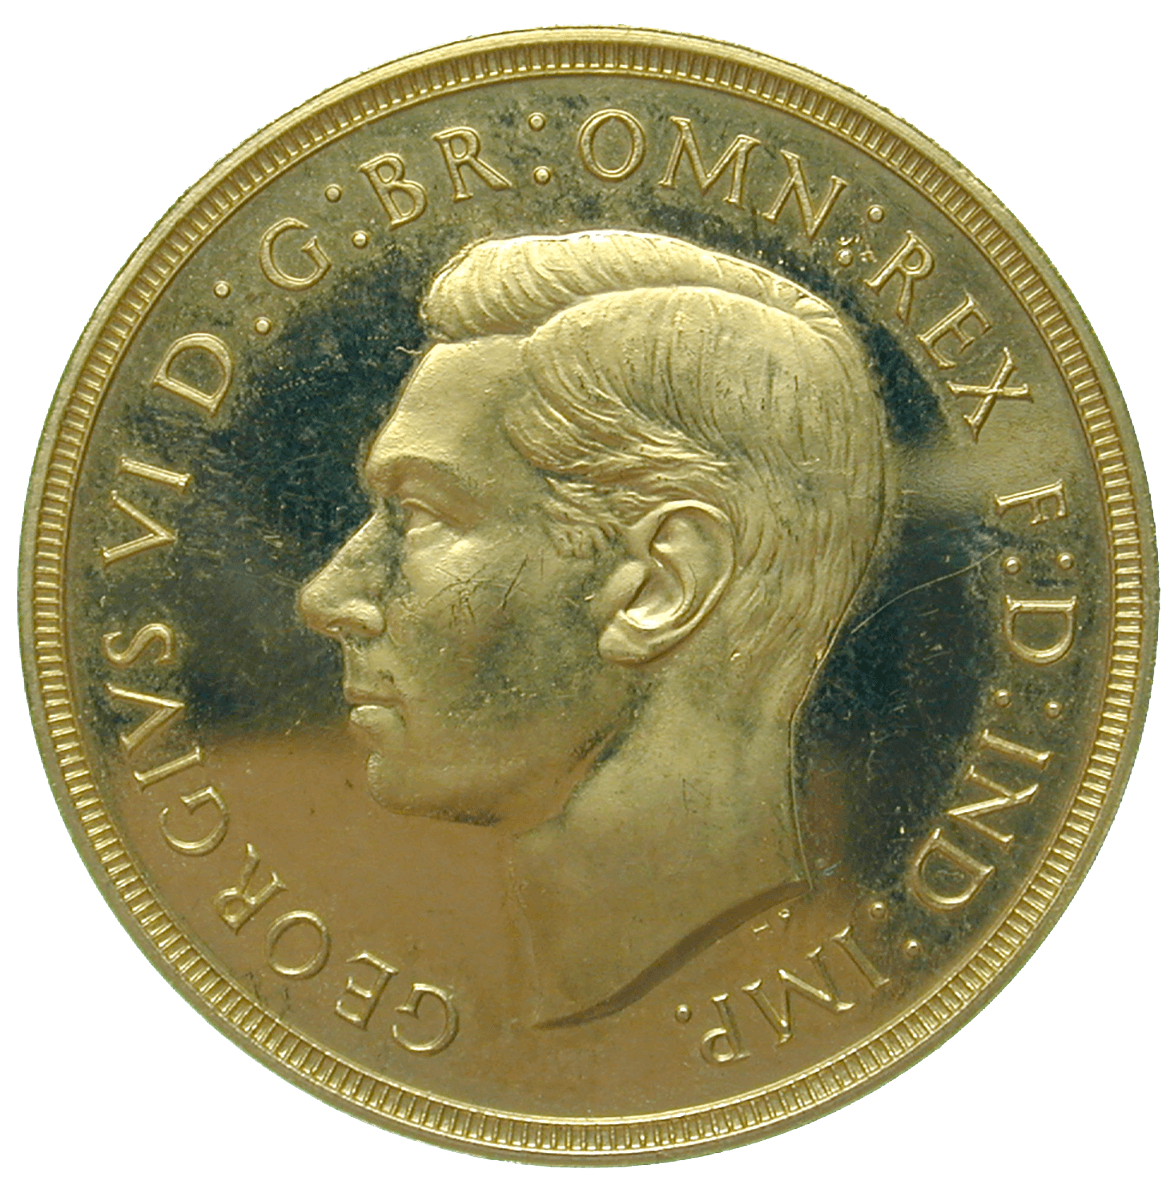 United Kingdom of Great Britain, George VI, 2 Pounds 1937 (obverse)